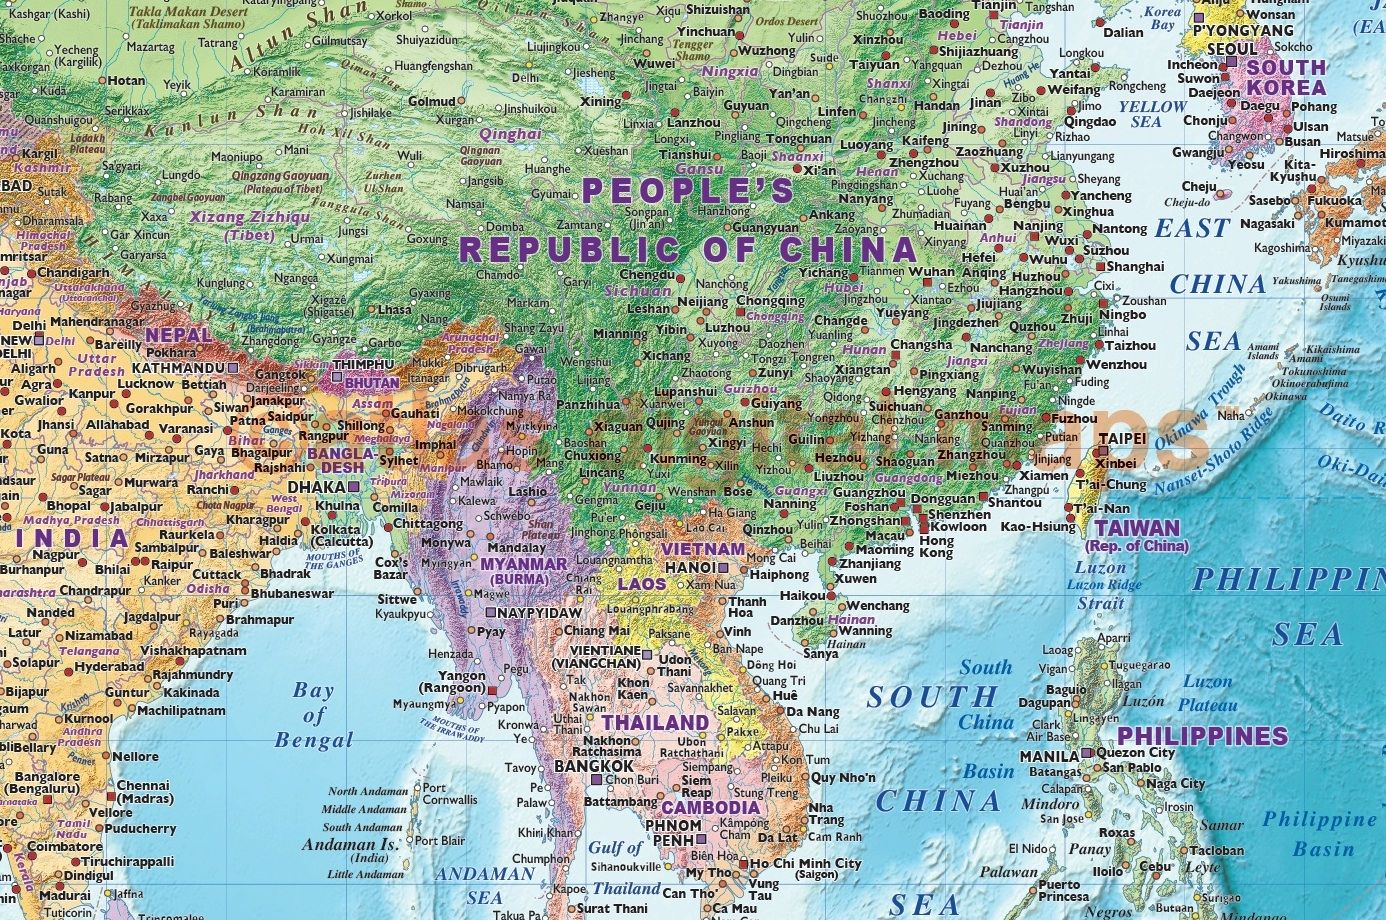 Political map of Southeast Asia including Thailand China and